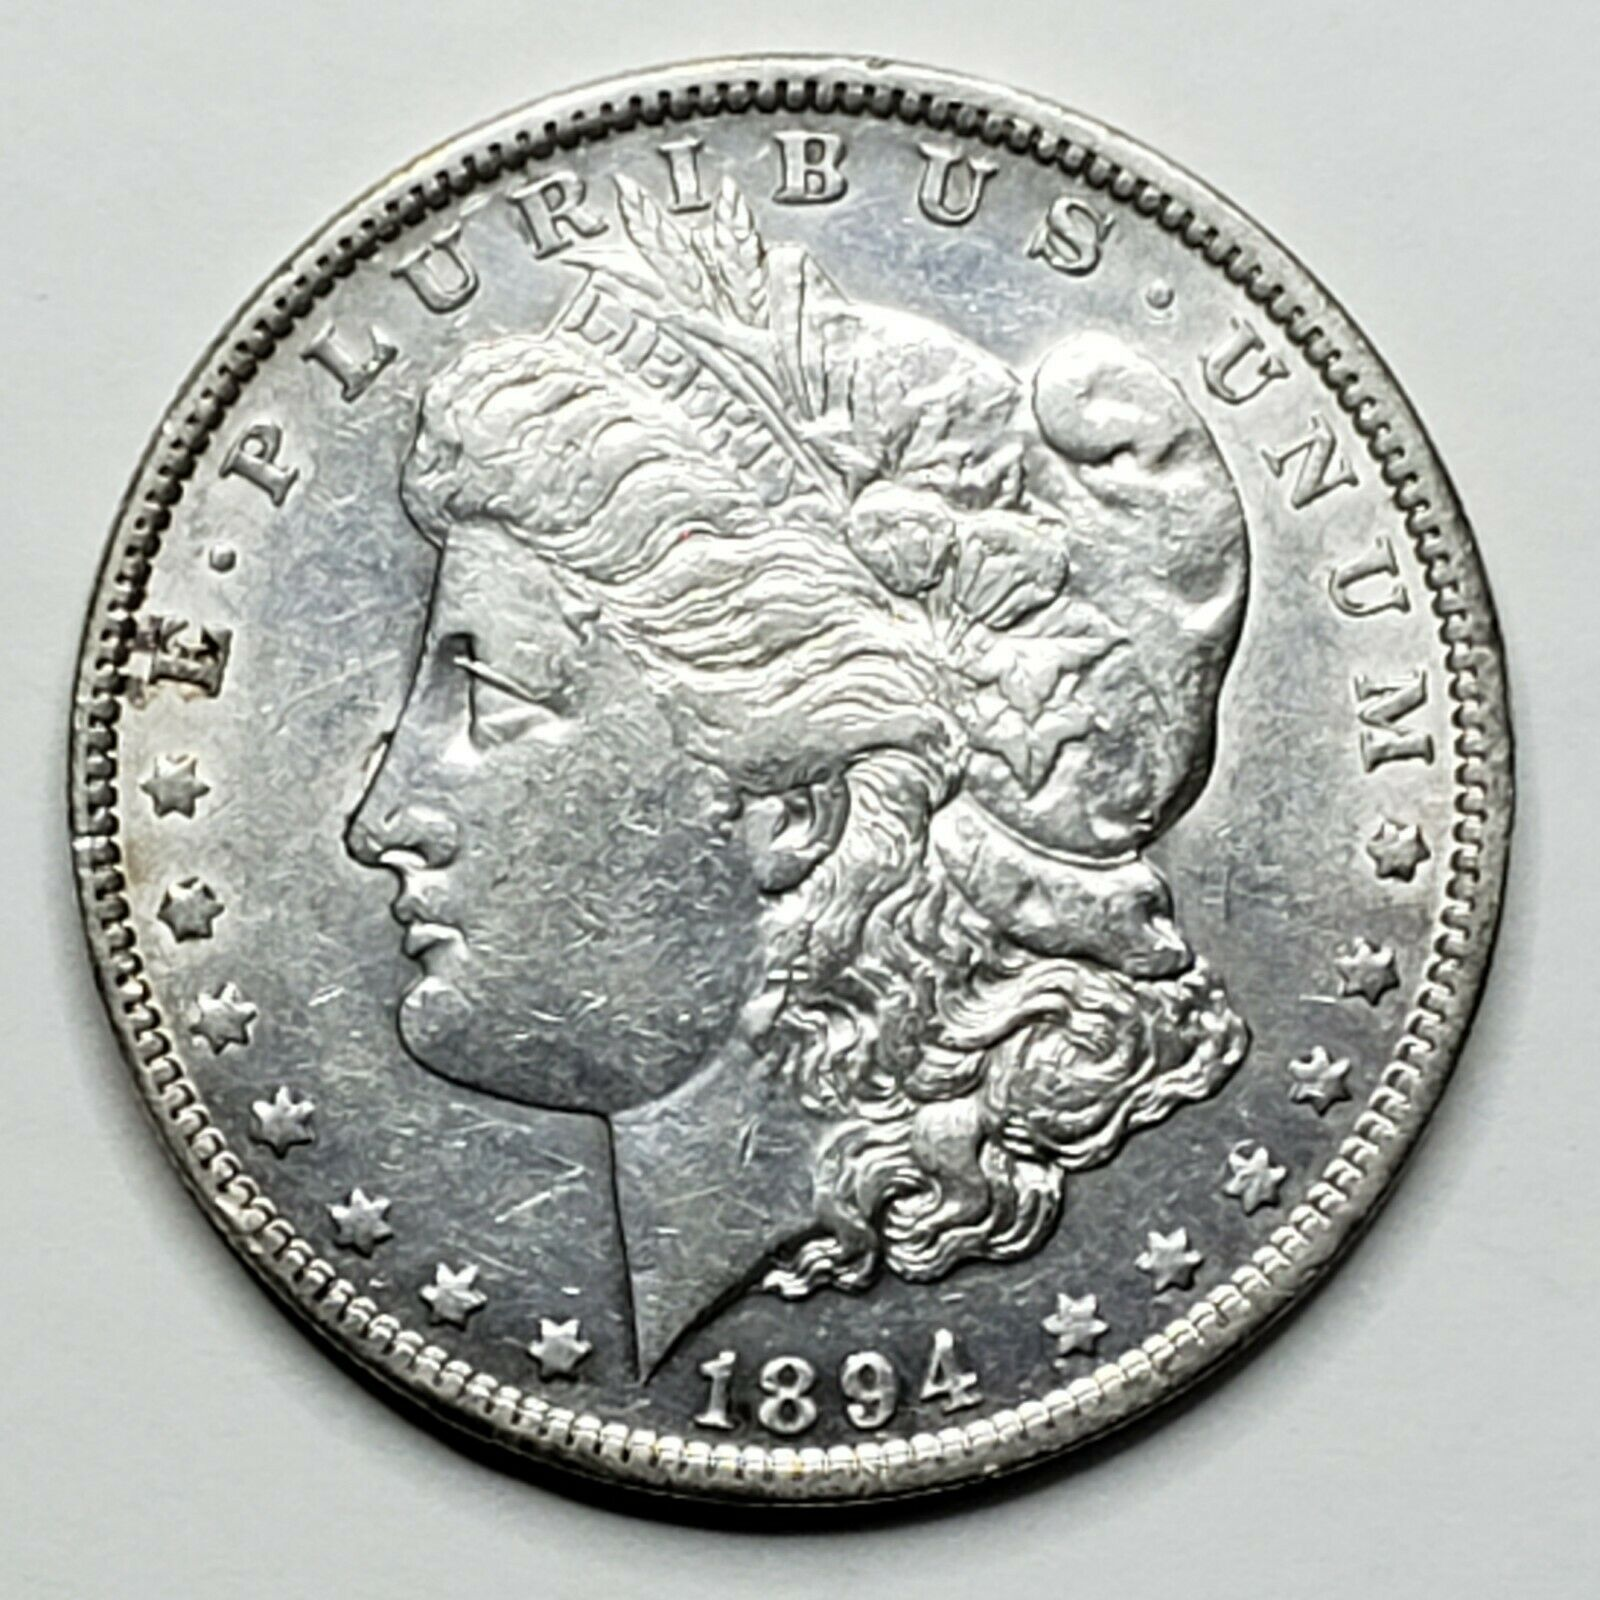 1894O MORGAN SILVER DOLLAR COIN Lot# 519-64